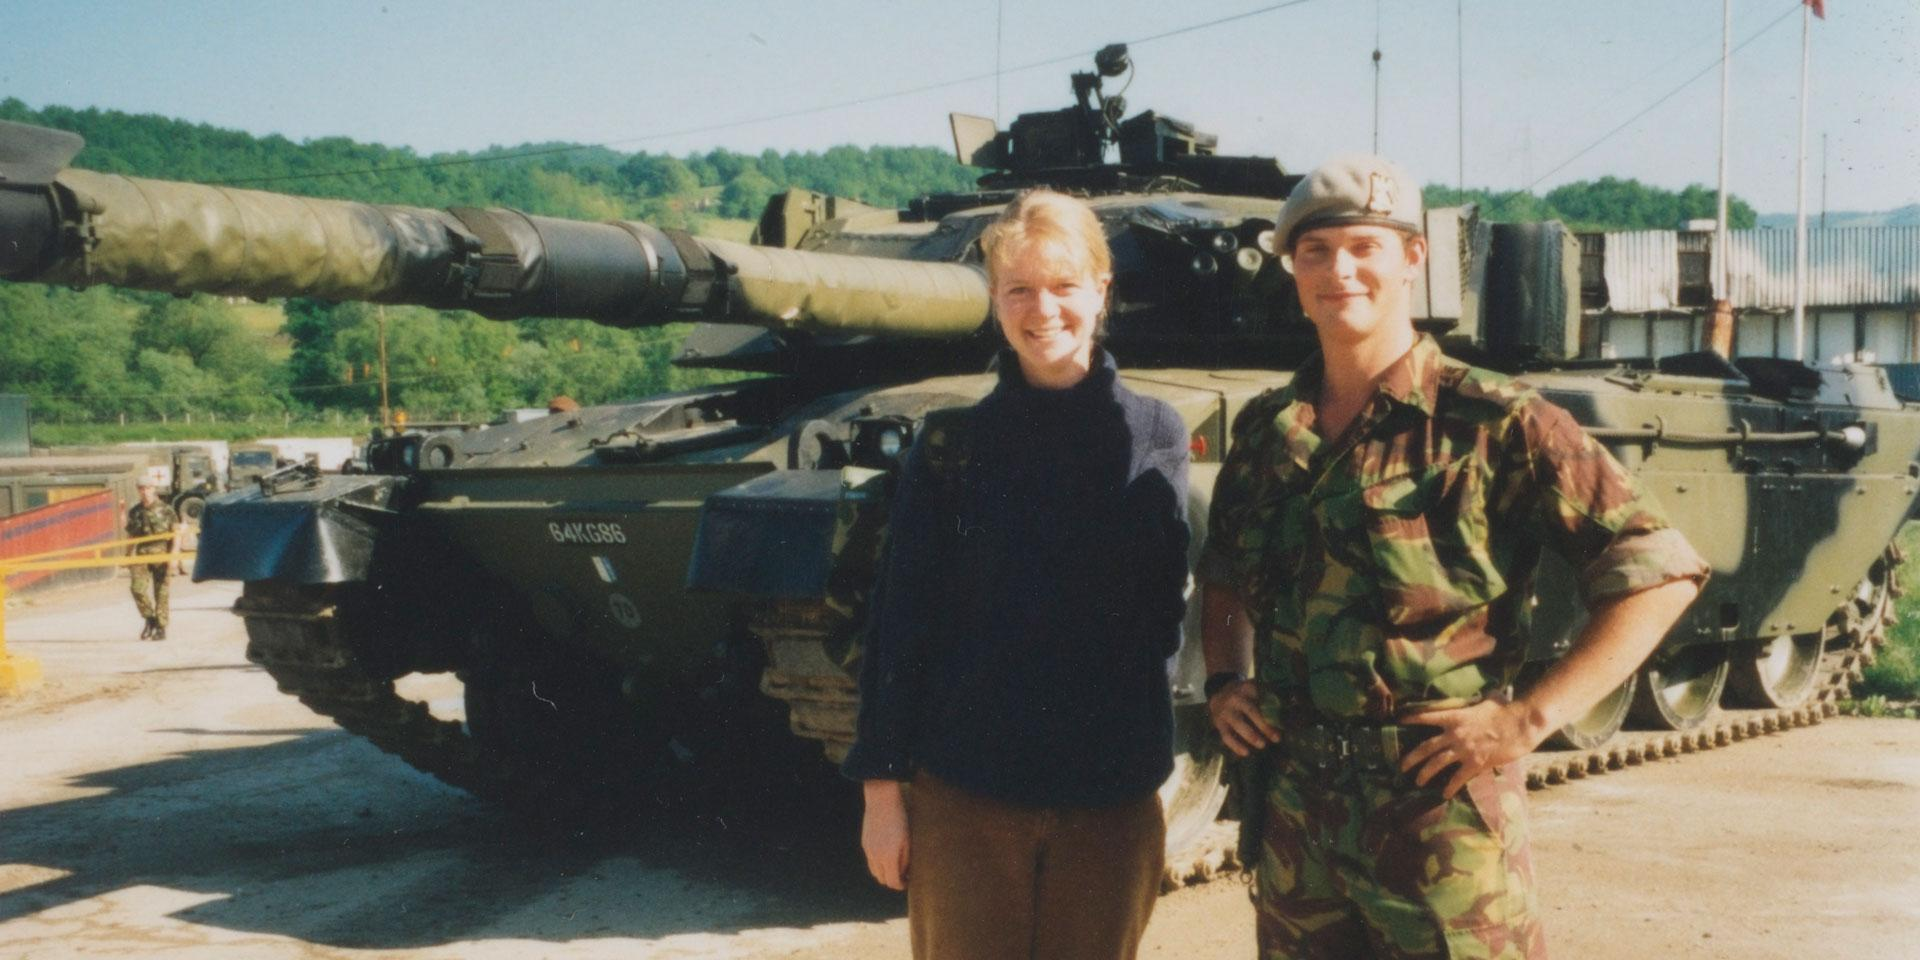 A civilian liaison officer with an officer of the Royal Scots Dragoon Guards and Challenger tank, Bosnia, 1996